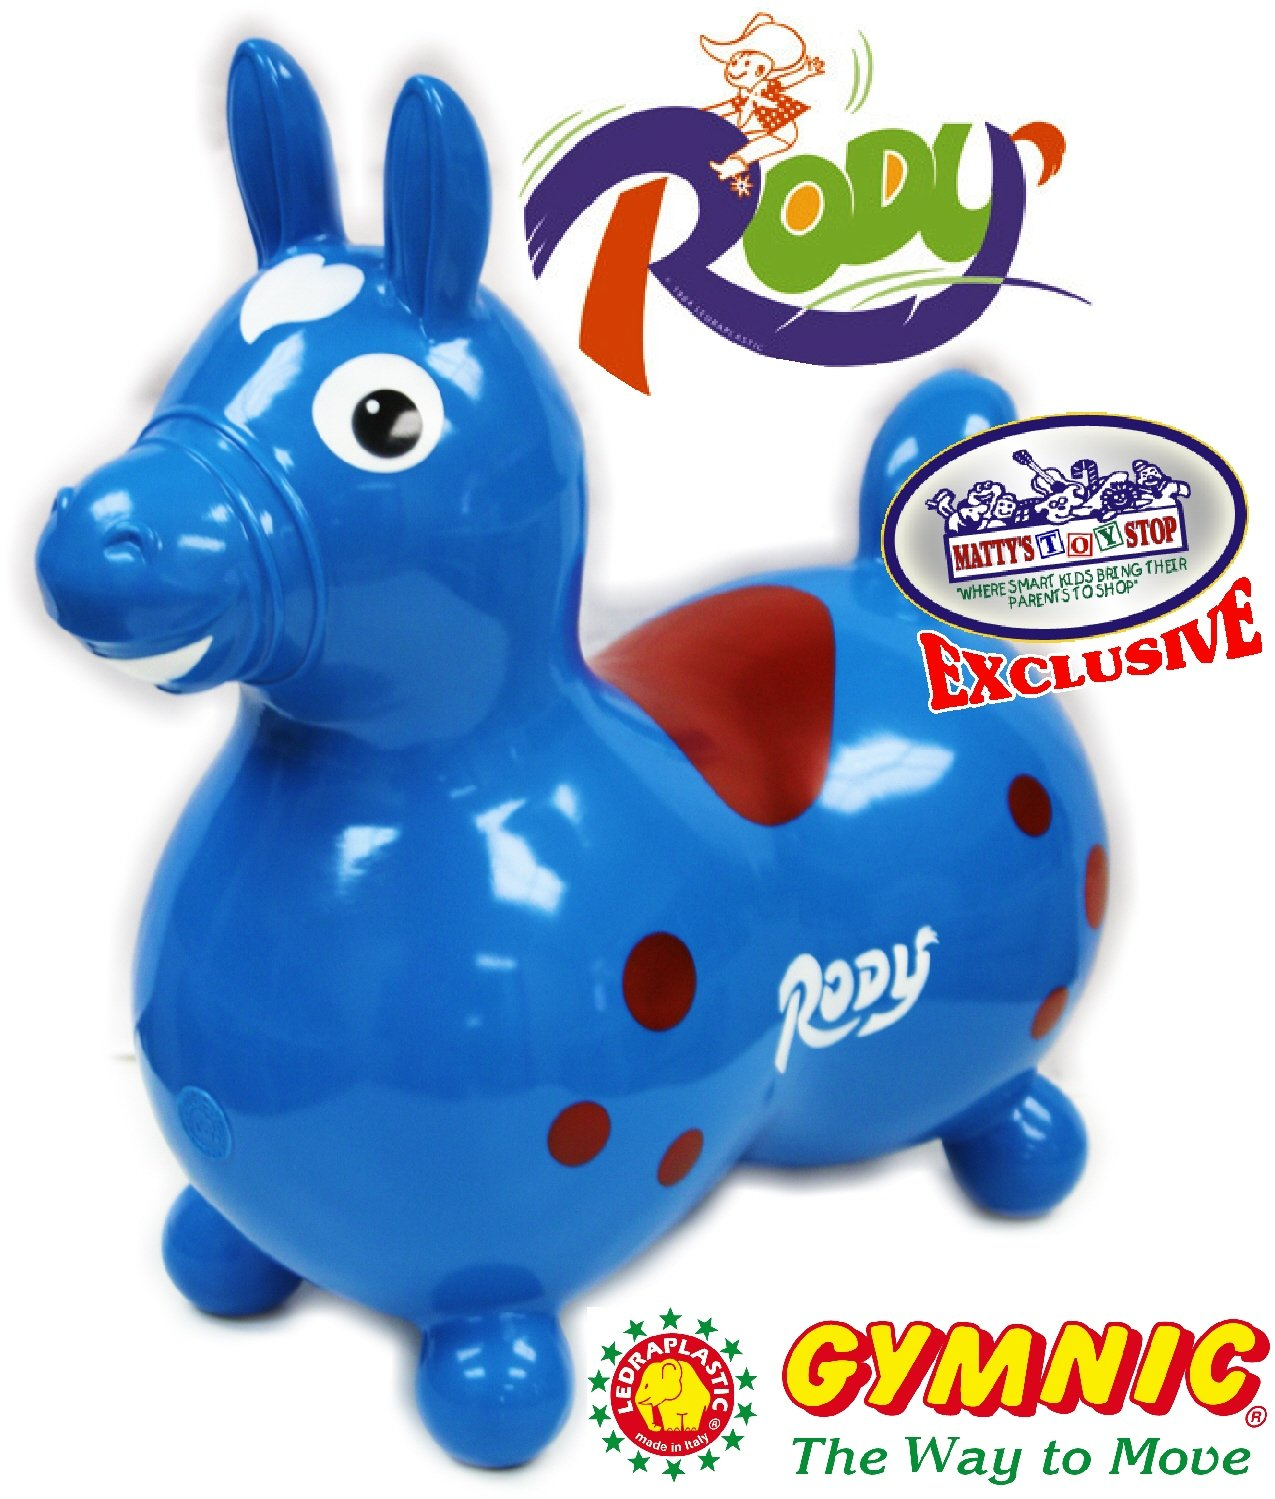 Gymnic Rody Horse Inflatable Bounce & Ride, Matty's Toy Stop Exclusive Blue & Red (7024)